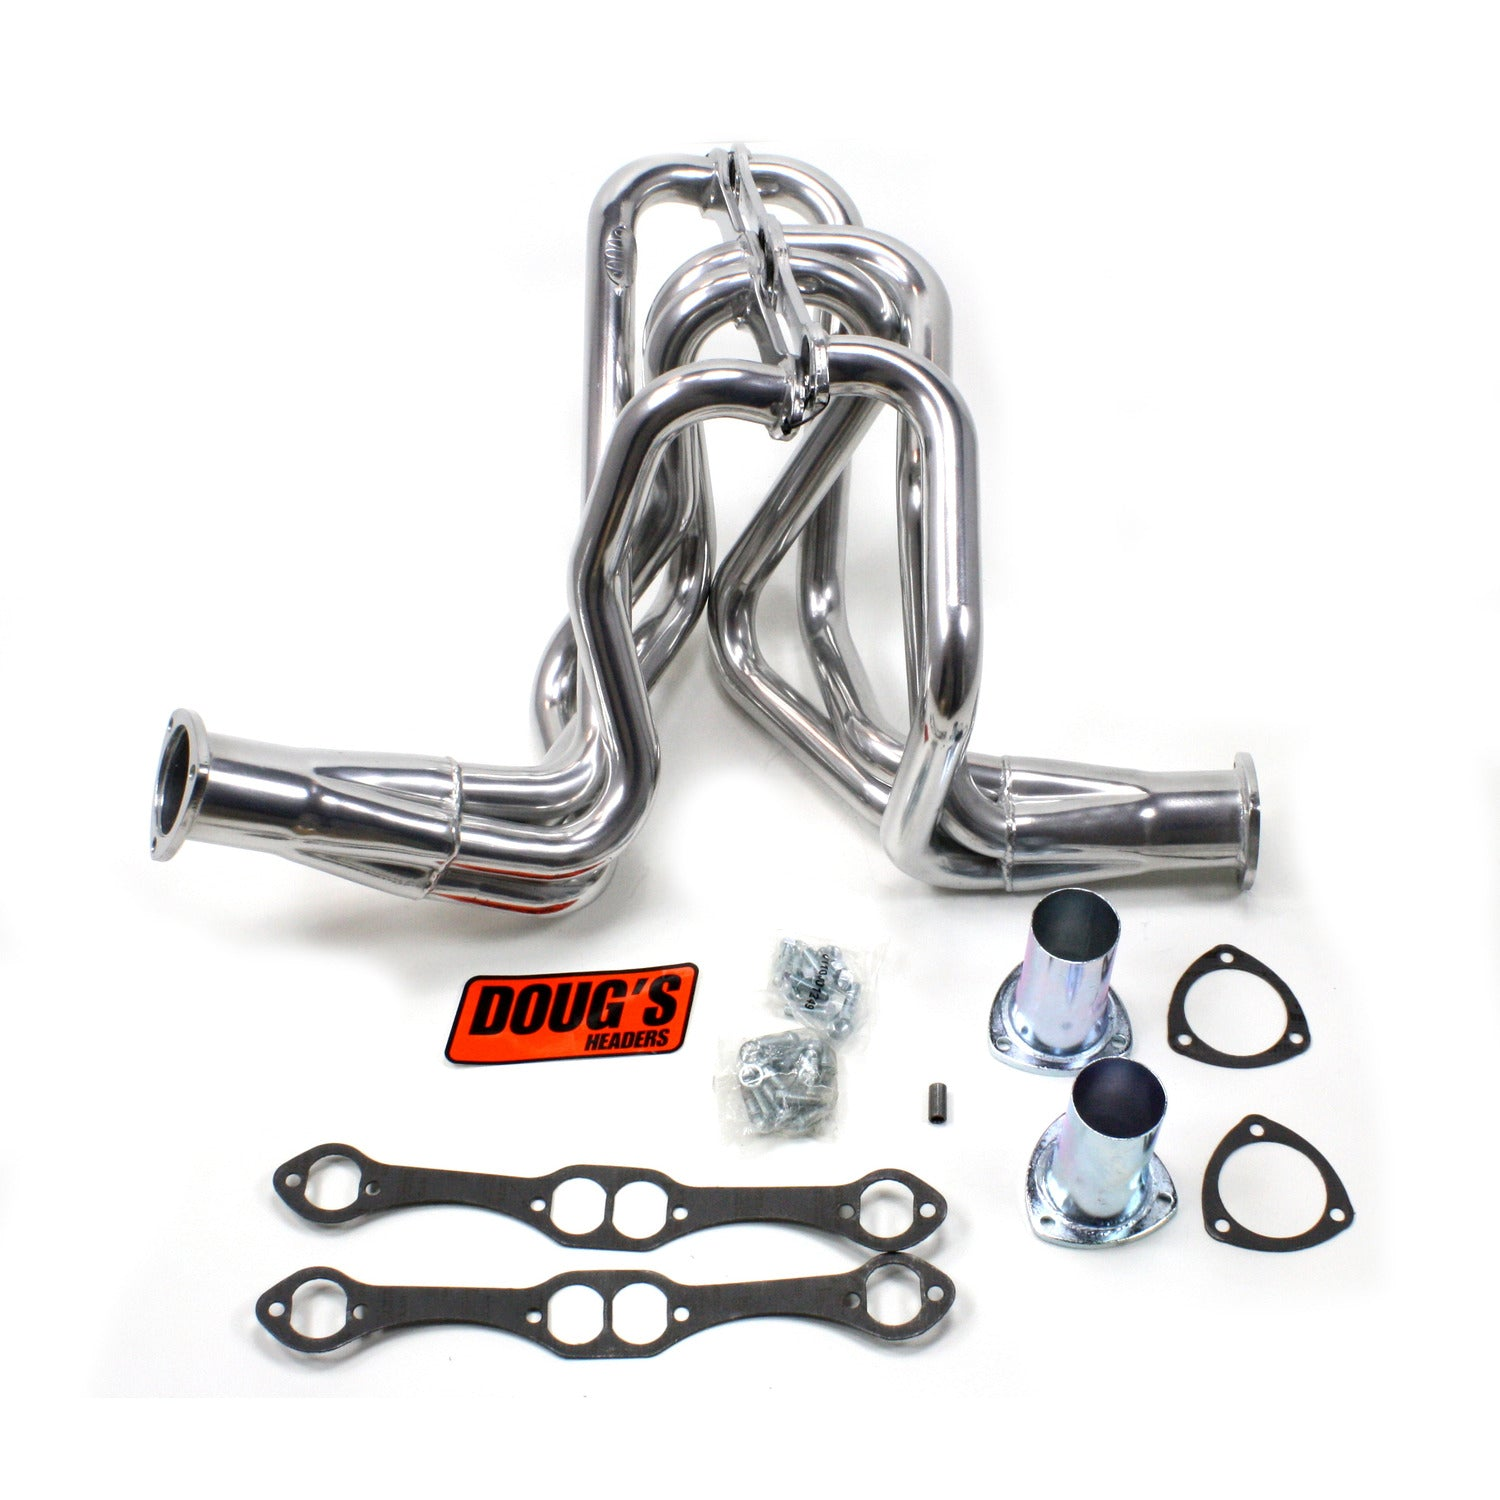 "Doug's Headers D358 1 5/8"" 4-Tube Full Length Header Chevrolet Pass Small Block Chevrolet 58-64 Metallic Ceramic Coating"